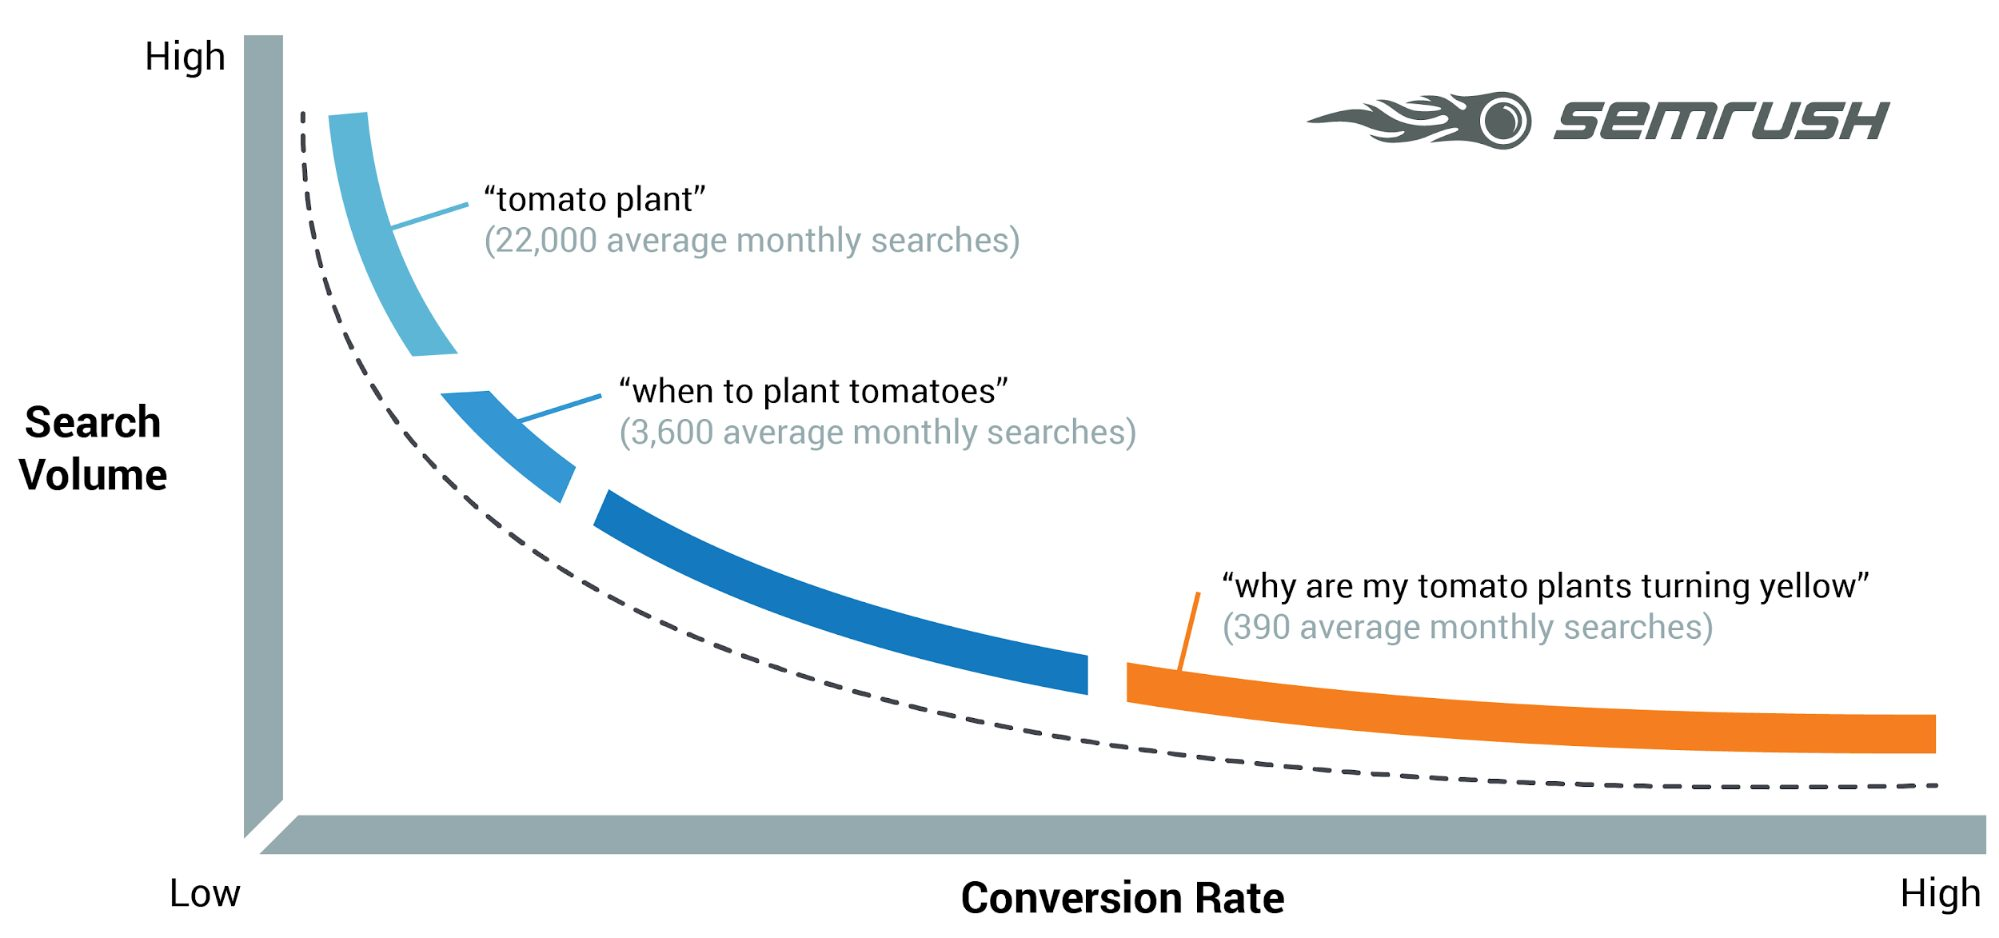 Search volume and conversation rate chart by Semrush.